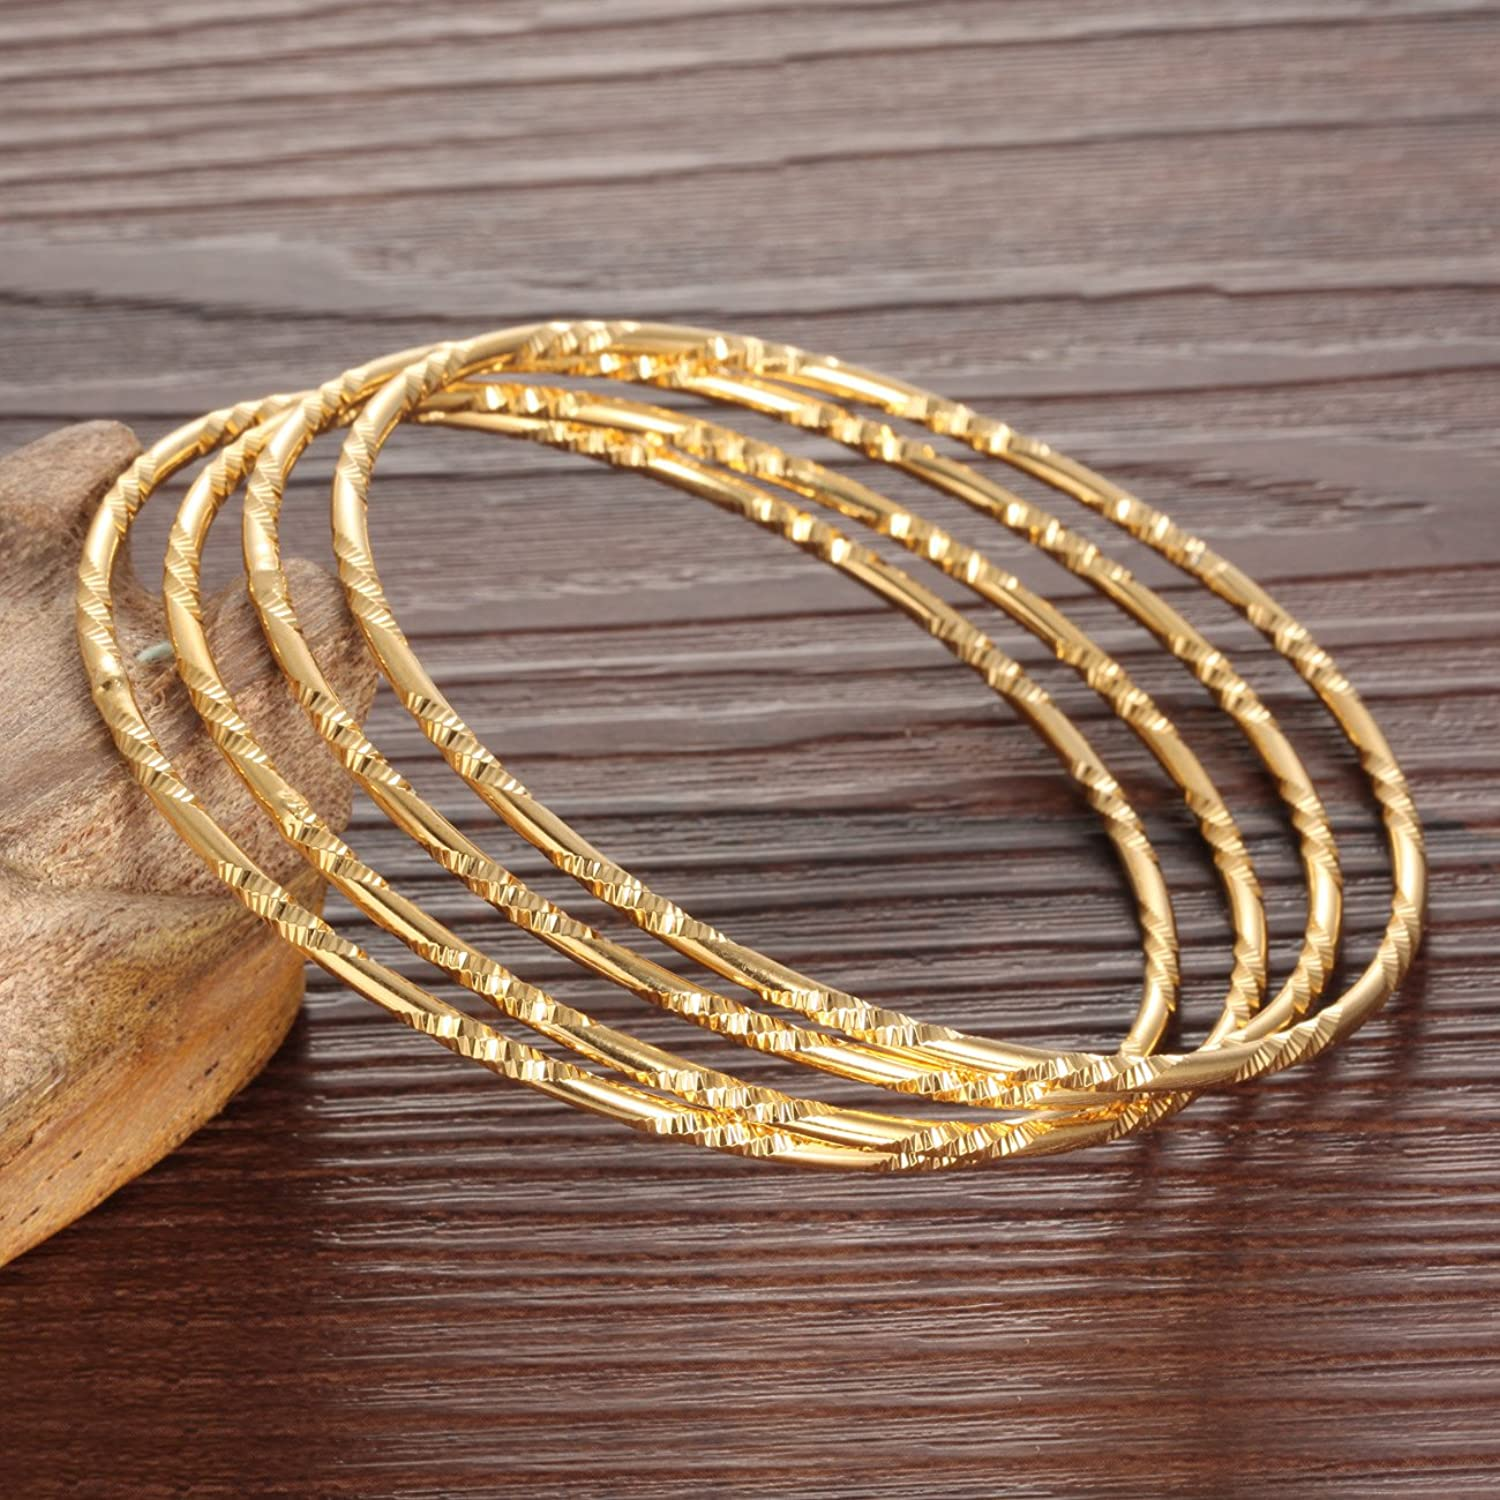 estate bangle yellow women gold bracelet fullsizerender for bracelets jewelry bangles